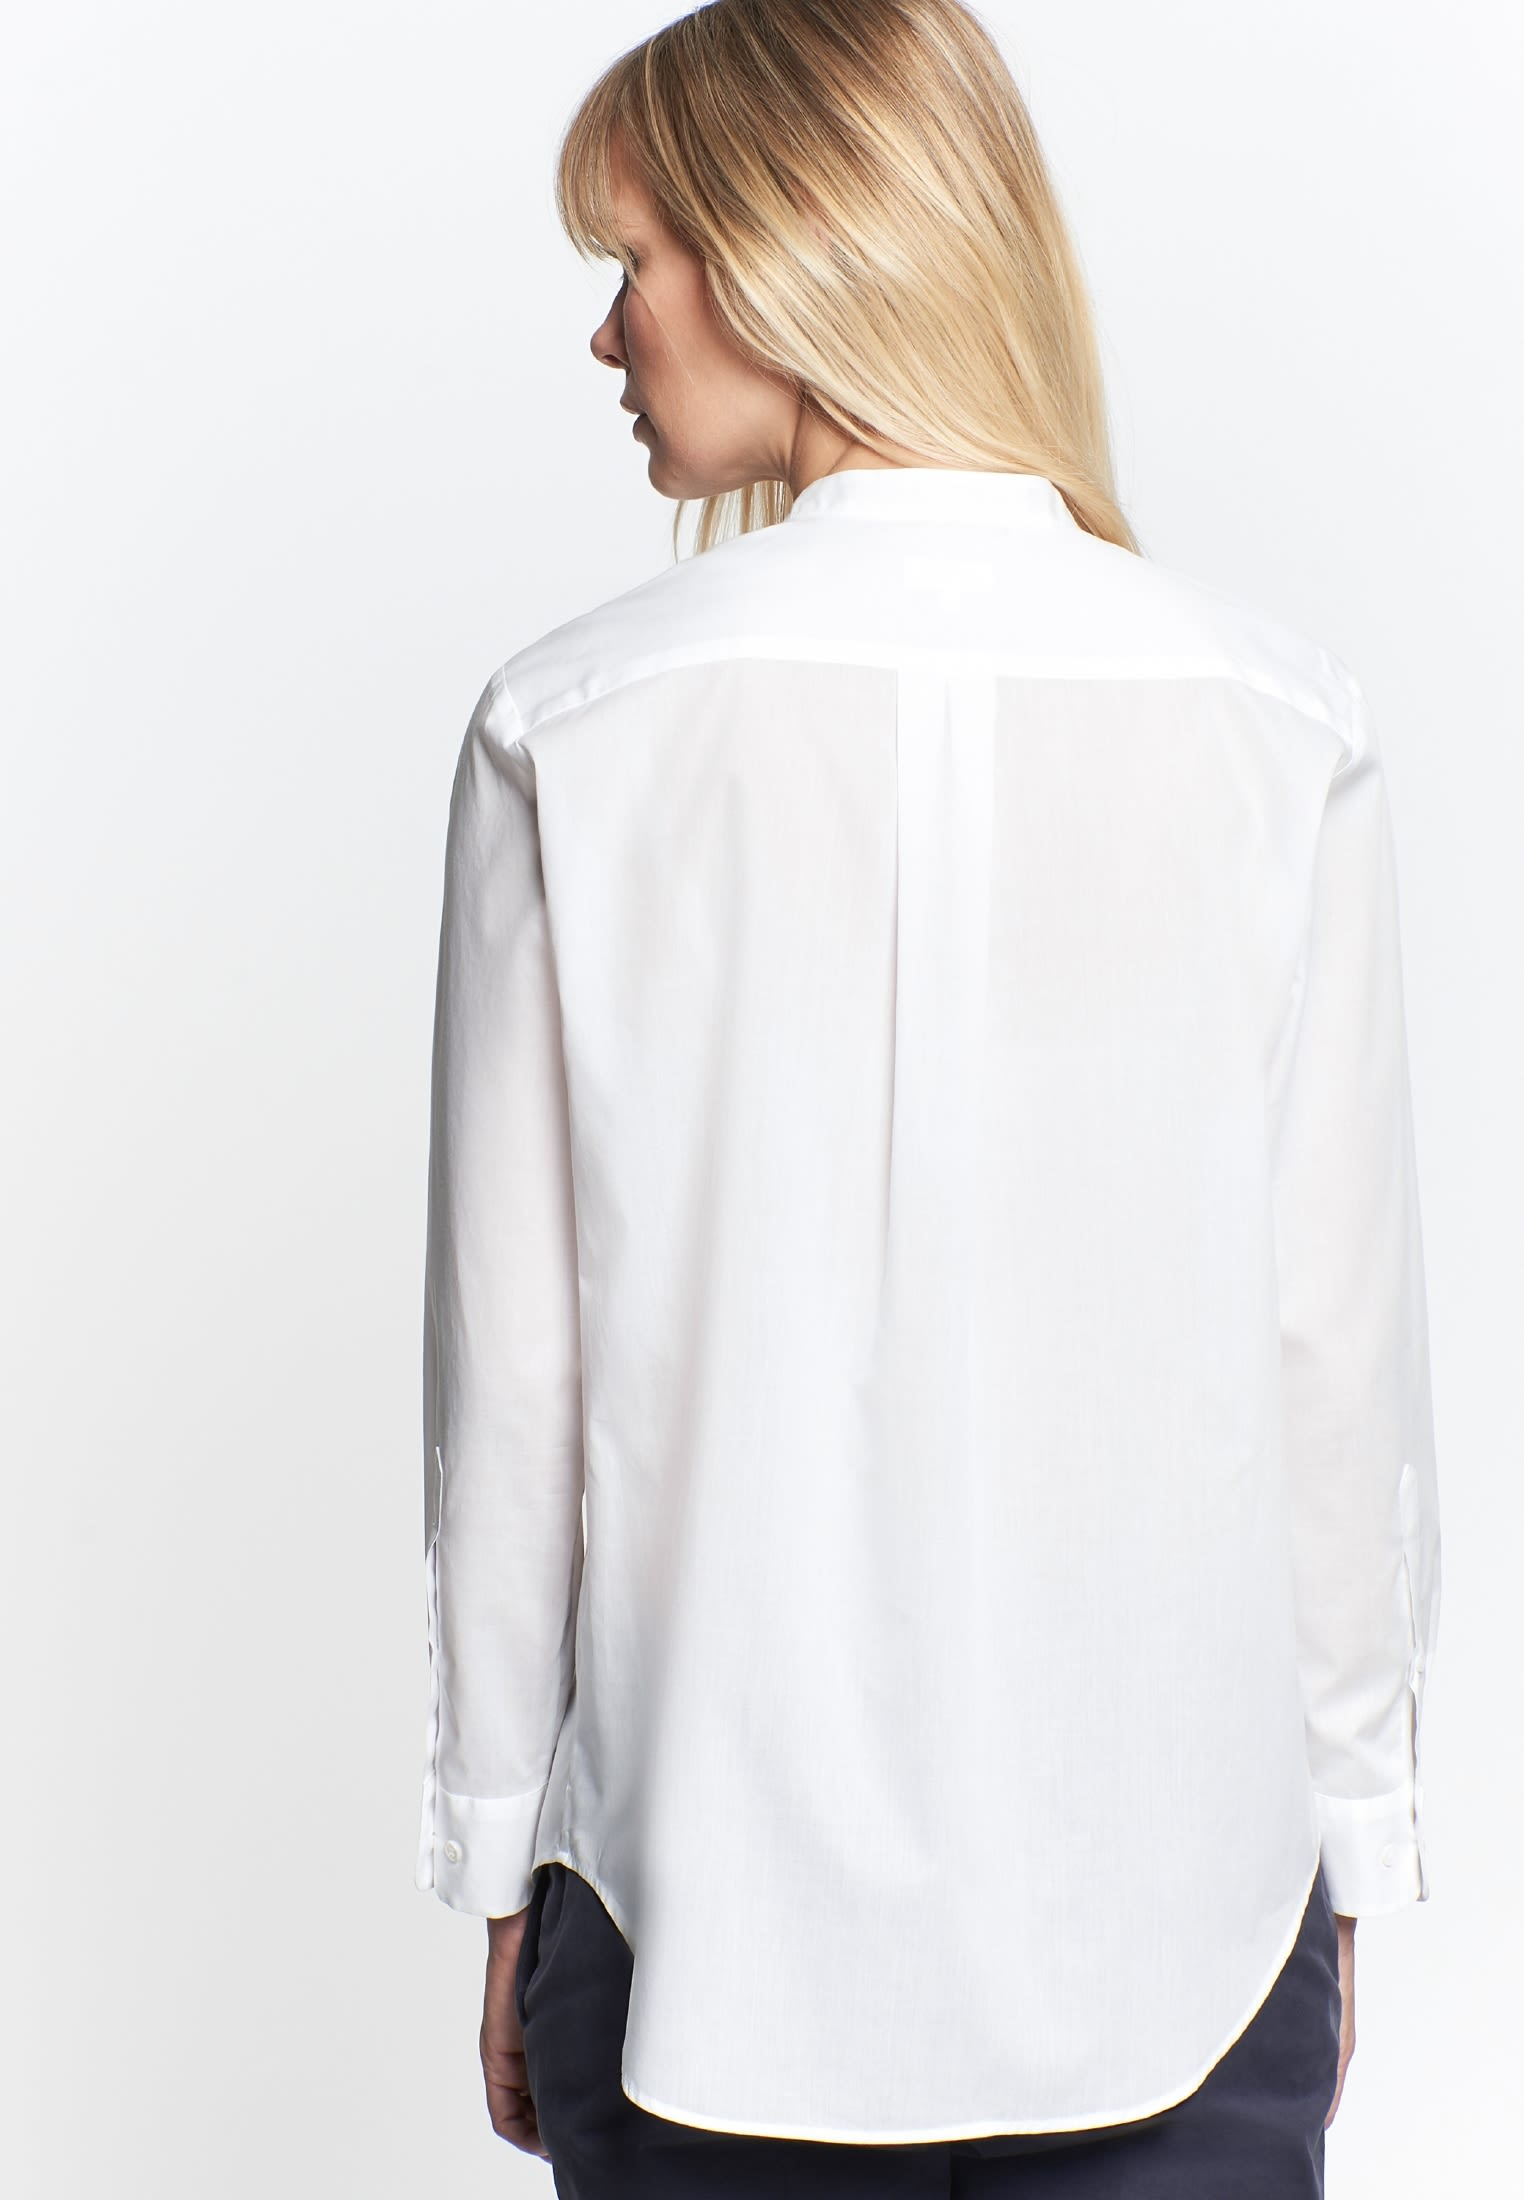 Poplin Stand-Up Blouse made of 100% Cotton in weiß |  Seidensticker Onlineshop